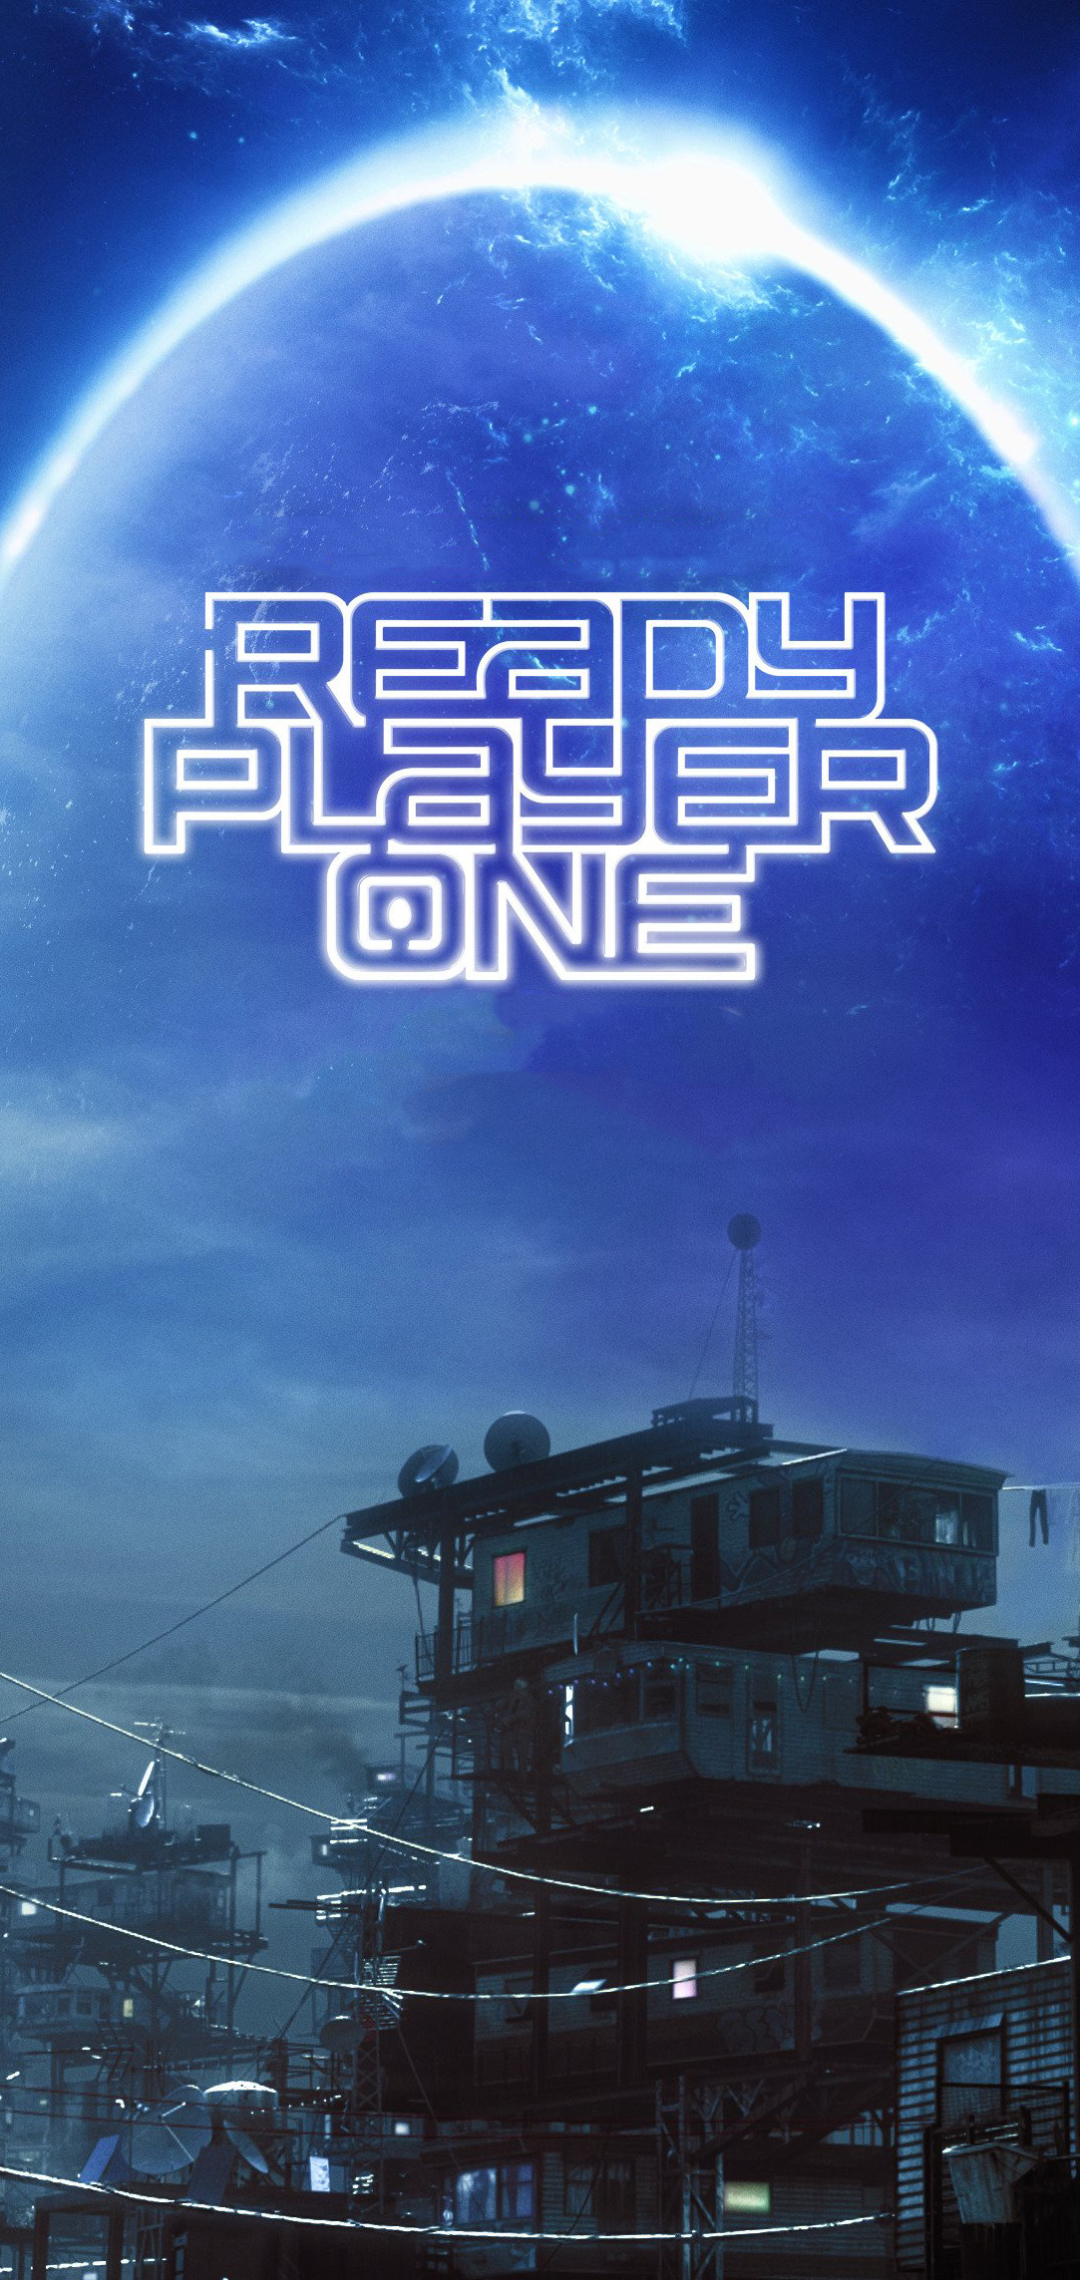 Download Ready Player One Wallpaper Hd Backgrounds Download Itl Cat